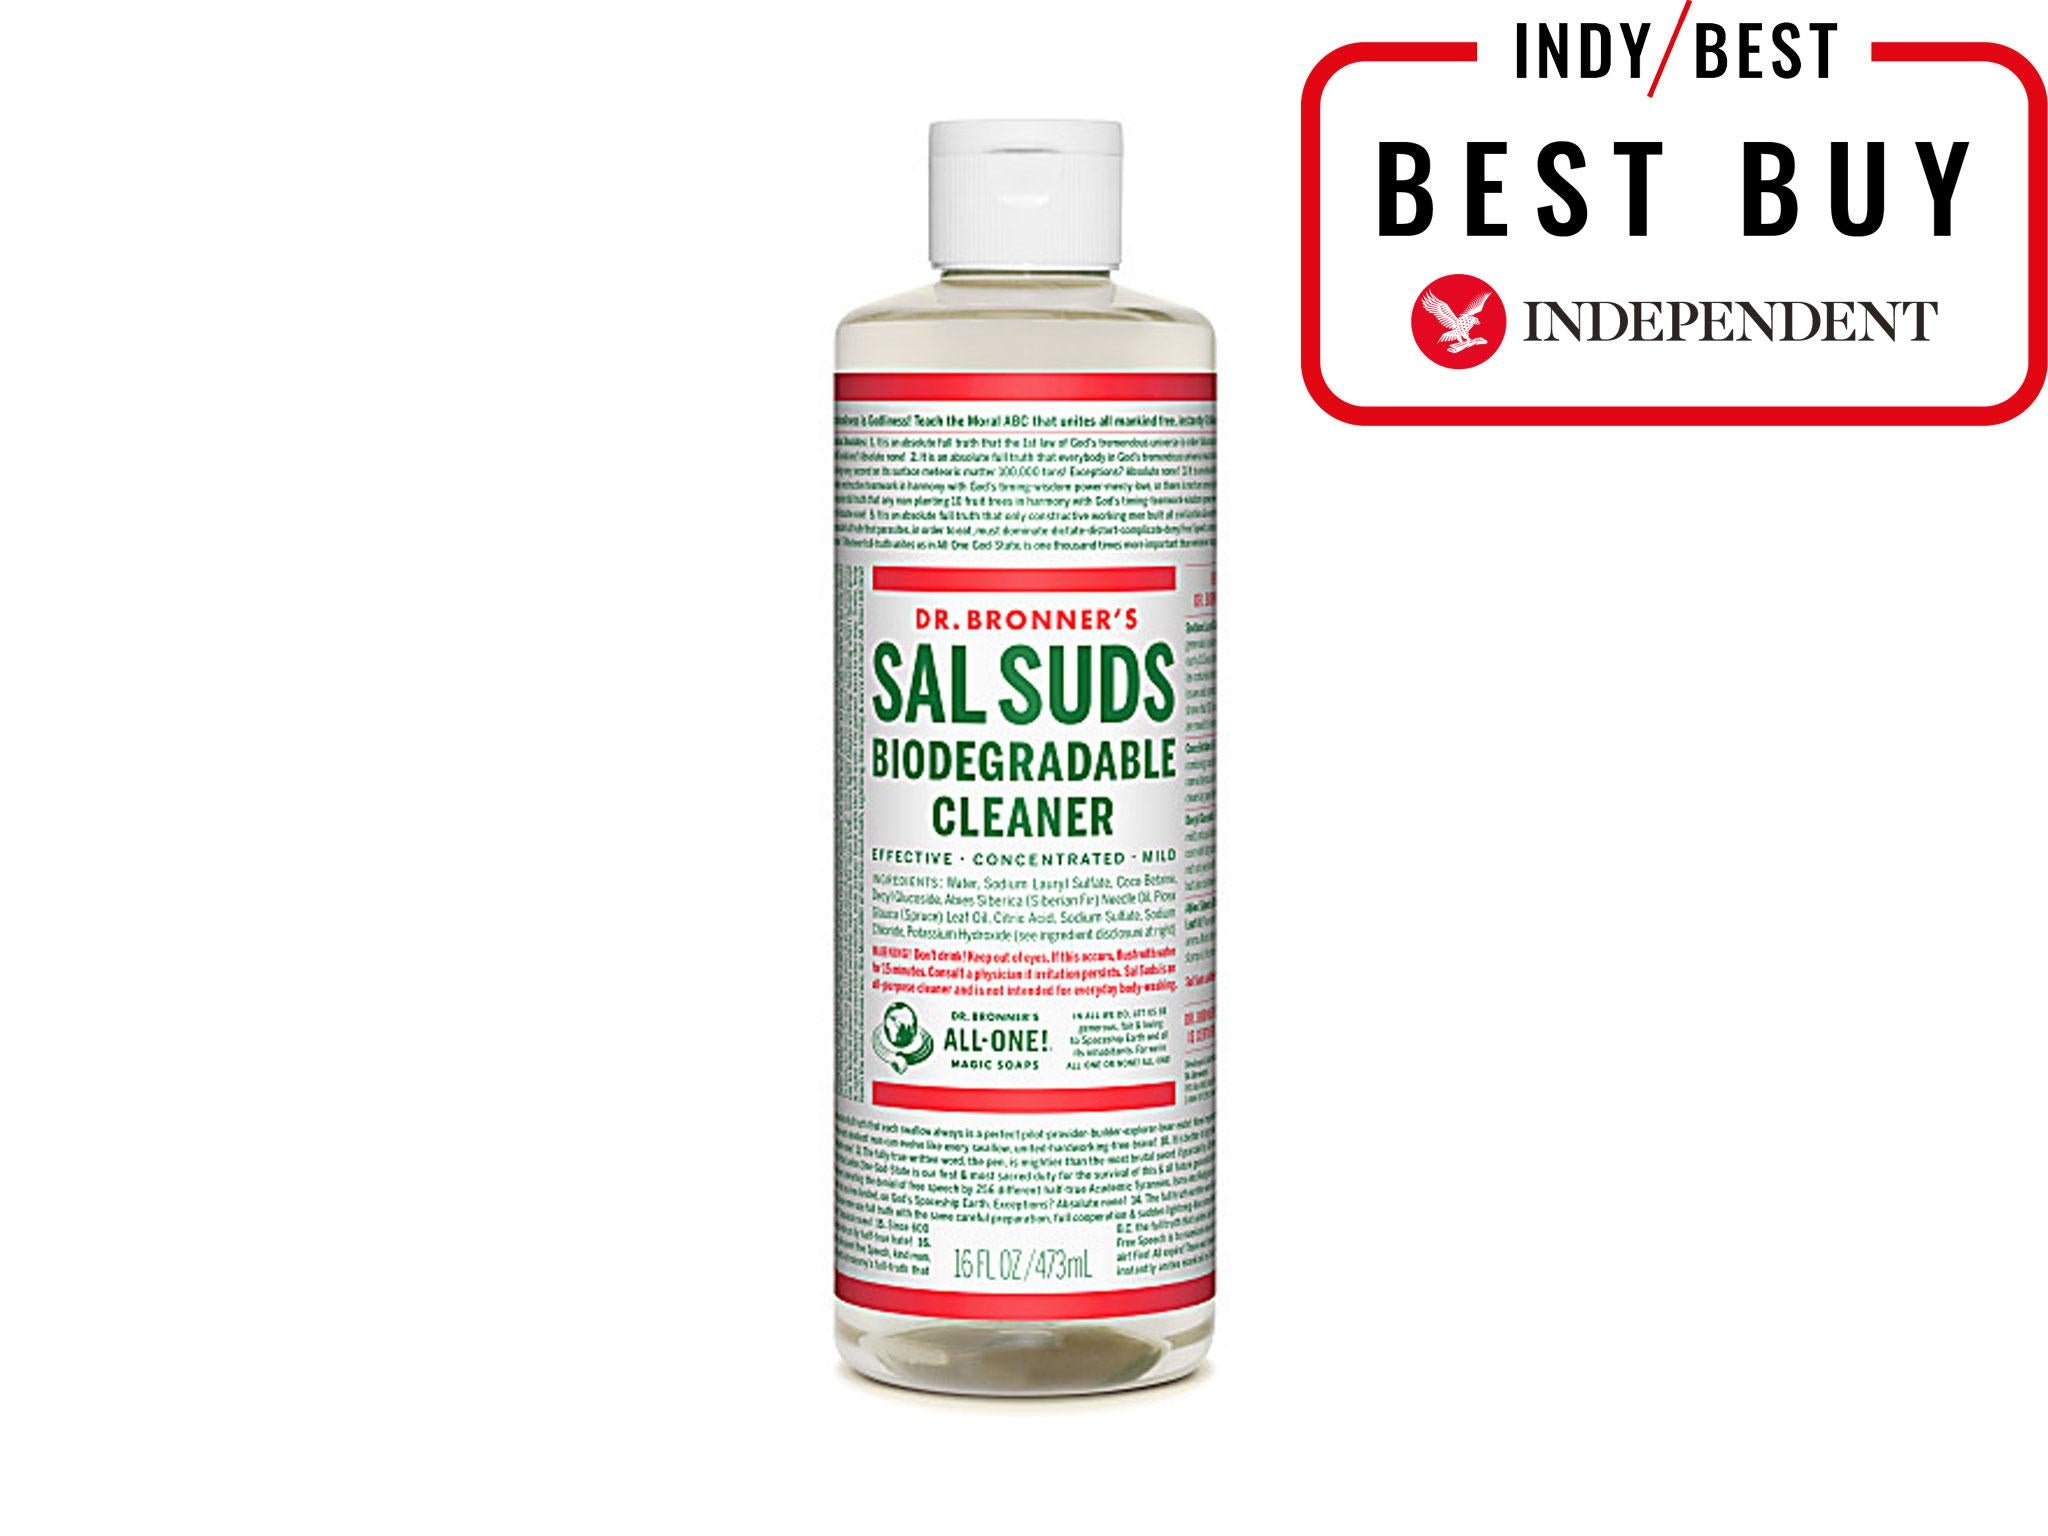 2c91c82c73 Dr Bronner s Sal Suds Biodegradable Cleaner  £9.49 for 473ml